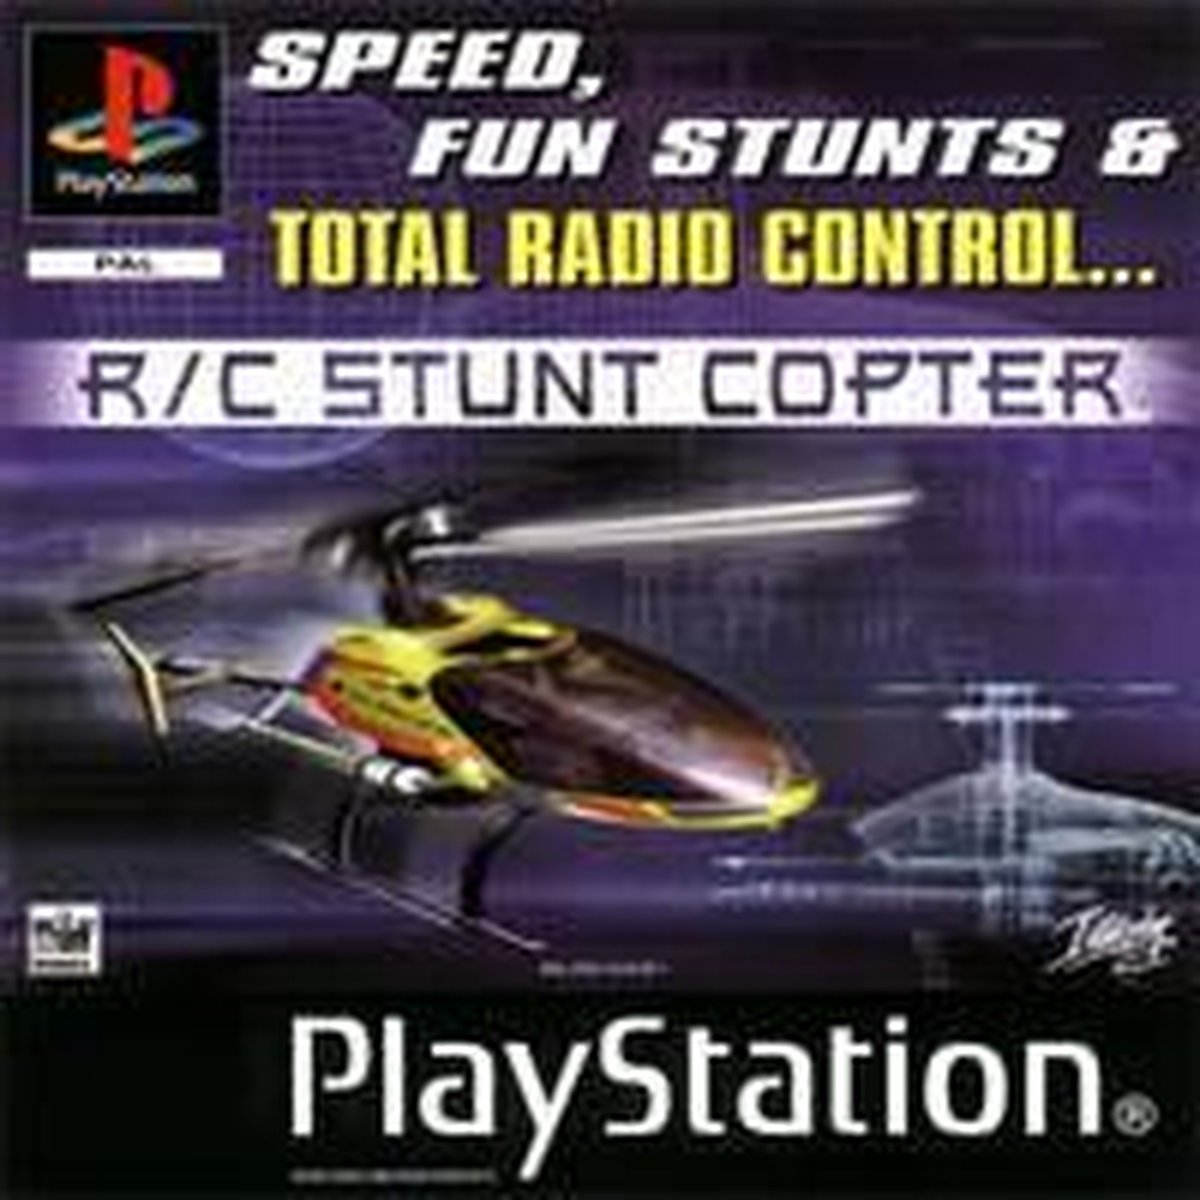 [Playstation 1] R/c Stunt Copter